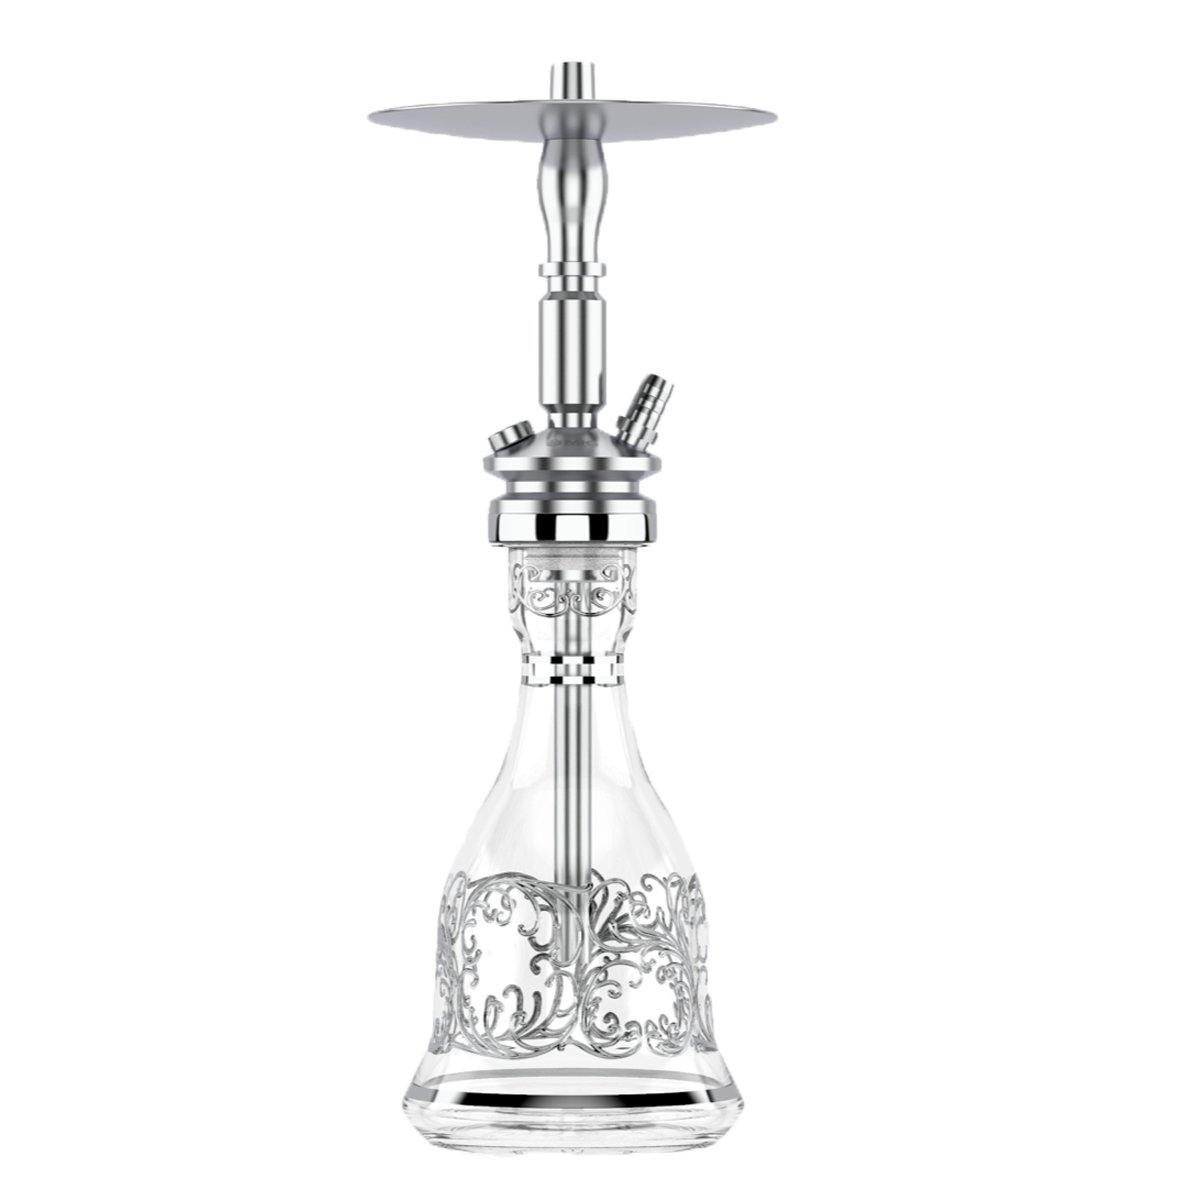 Mig Air Force S Shisha Deluxe Classic  - Silver - shishagear - UK